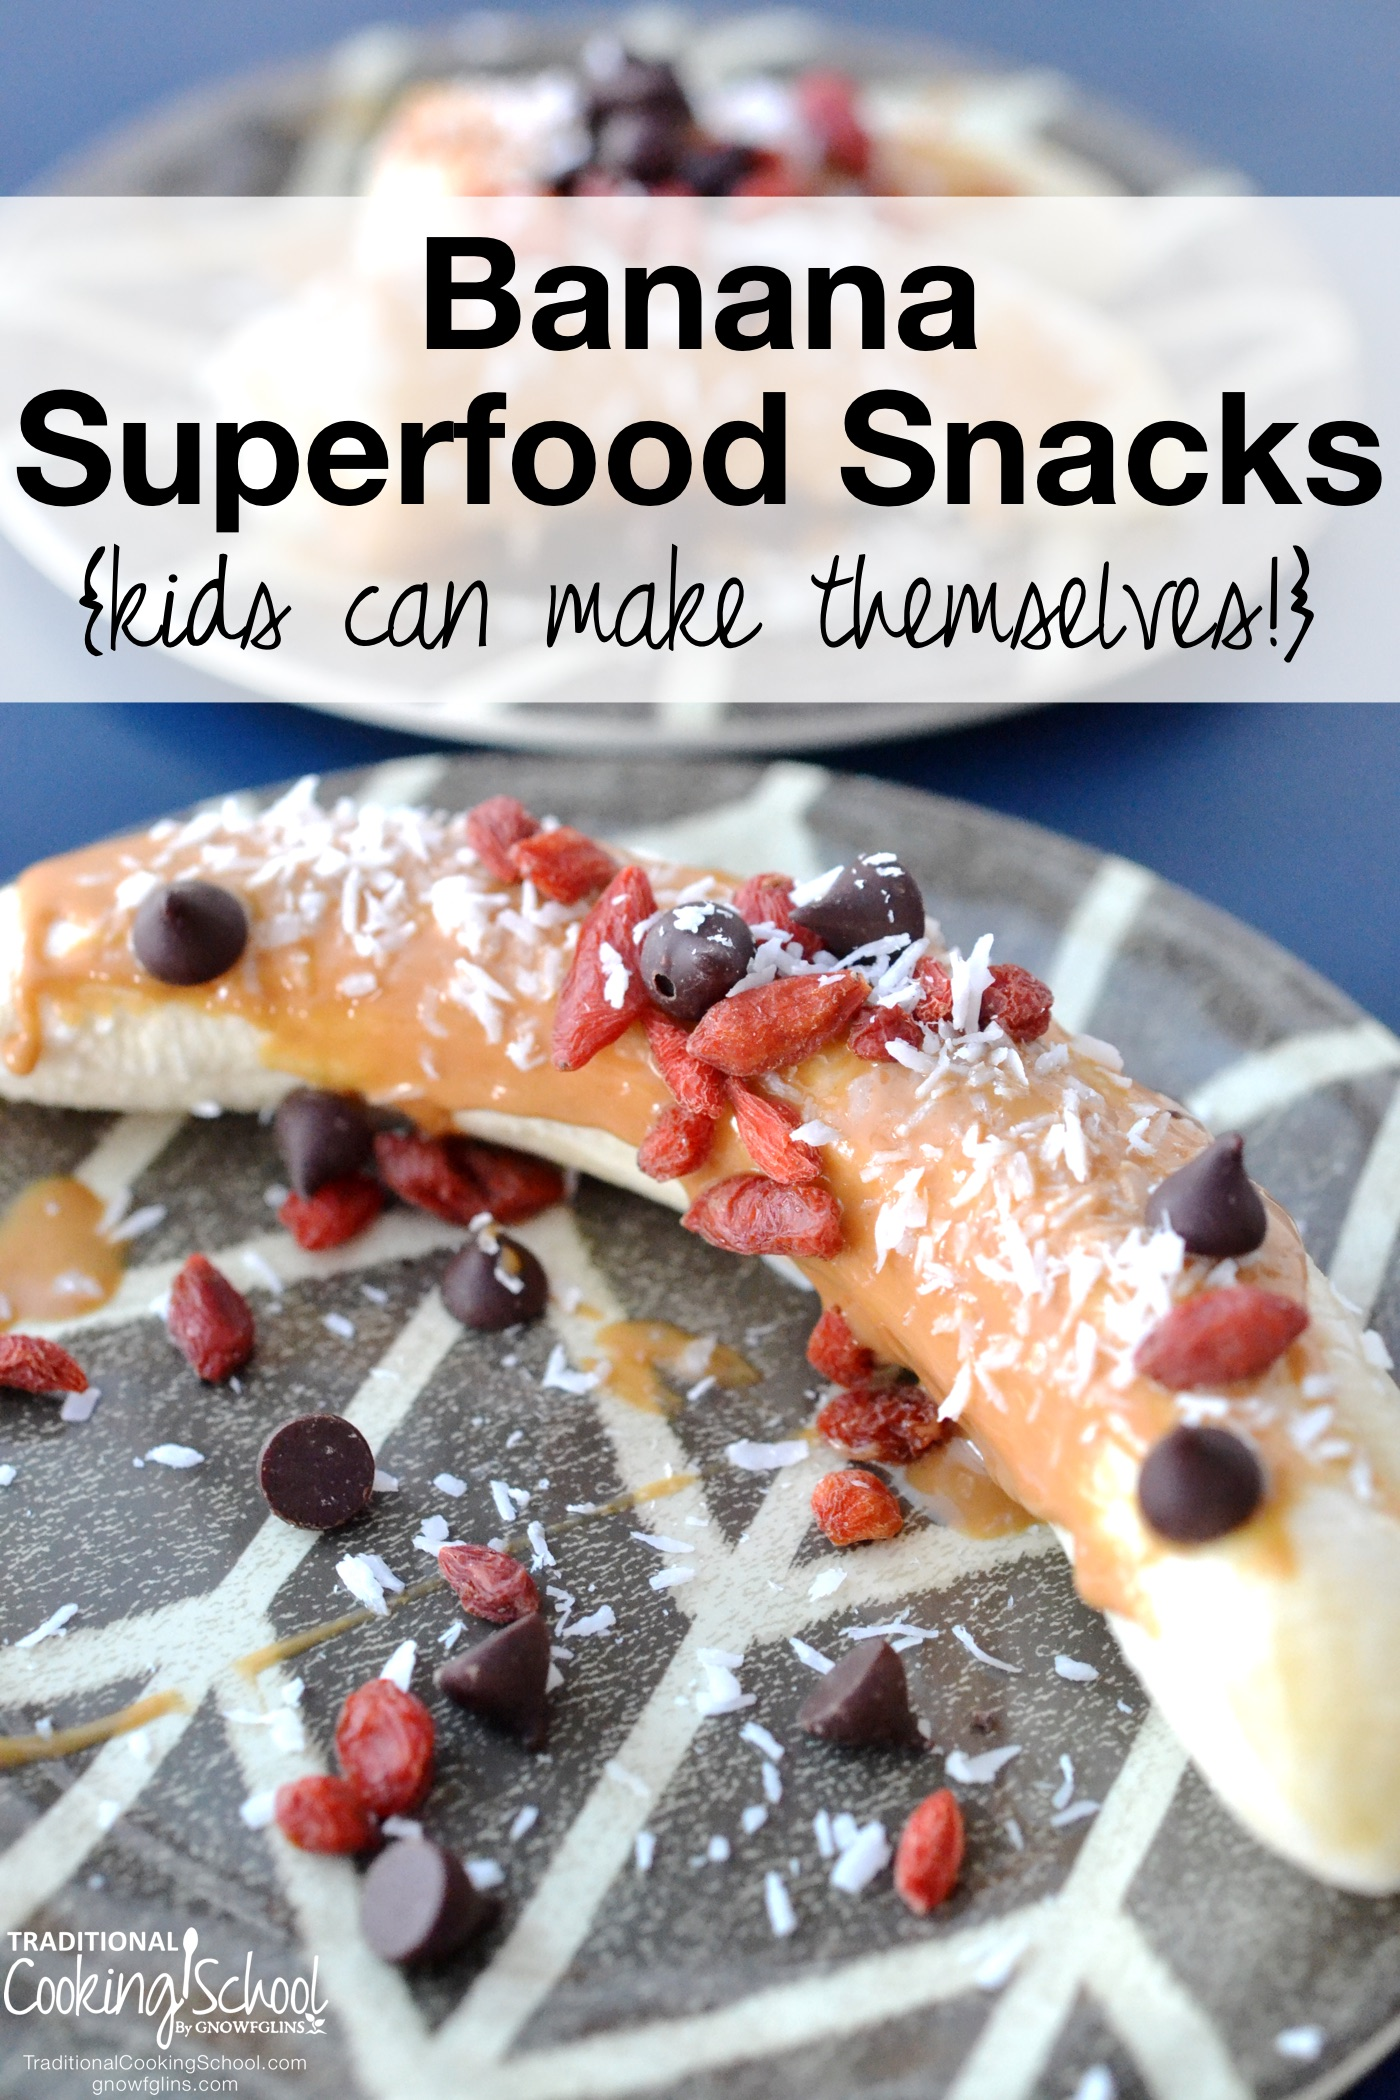 Banana Superfood Snacks {kids can make themselves!}   If going to the fridge and peeling the foil lid off a container of fruity flavored yogurt or pudding cup is as far as your kids go when it comes to making their own snacks, you NEED this recipe. These easy snacks are perfect for hungry kids with mommas who just need a break from snack time. These are so easy, your kids can make one for you while you actually sit down and enjoy snack time for once!   TraditionalCookingSchool.com